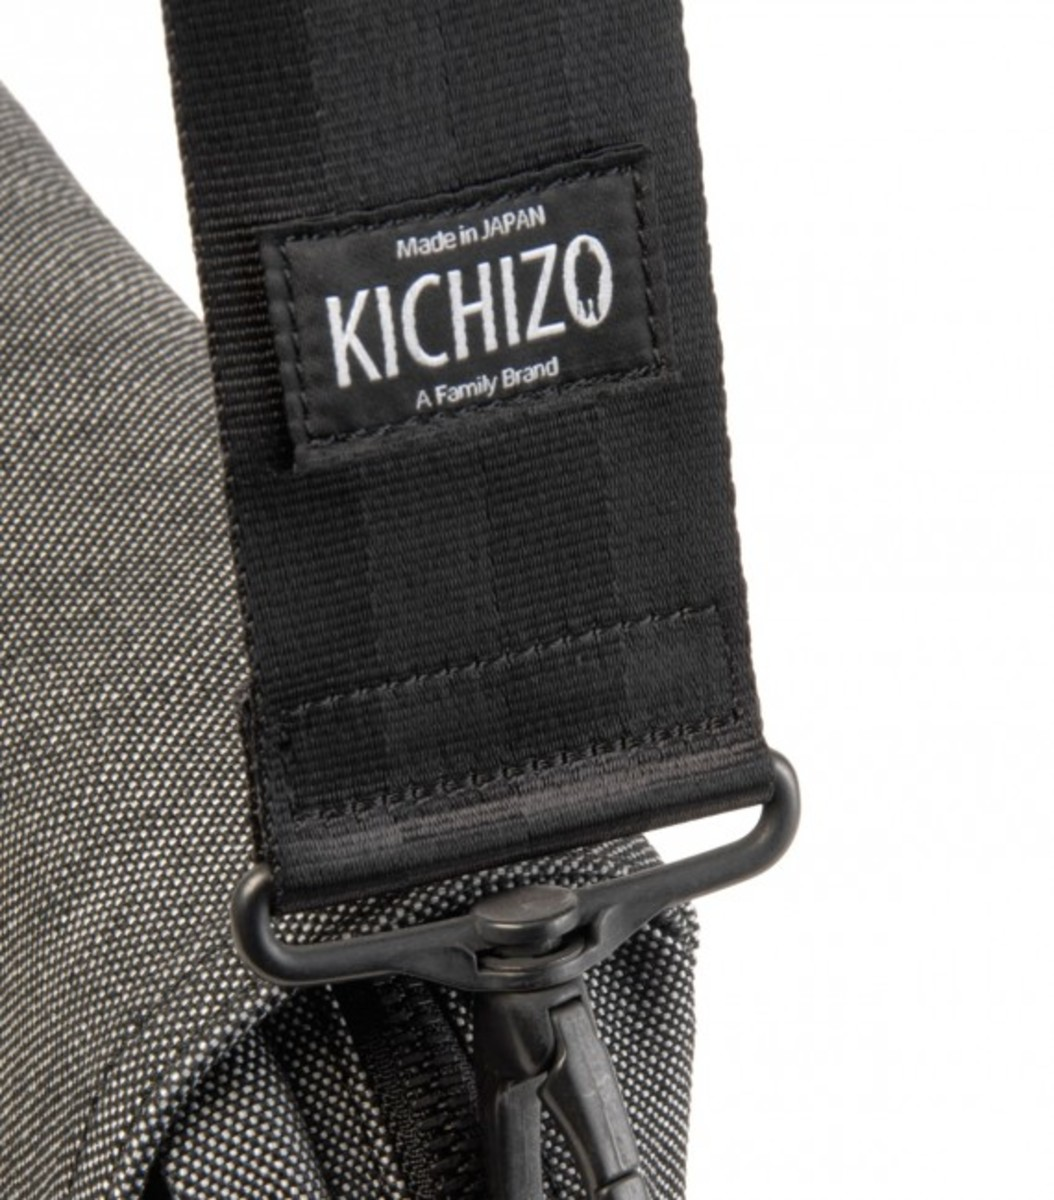 kichizo-shoulder-bag-05